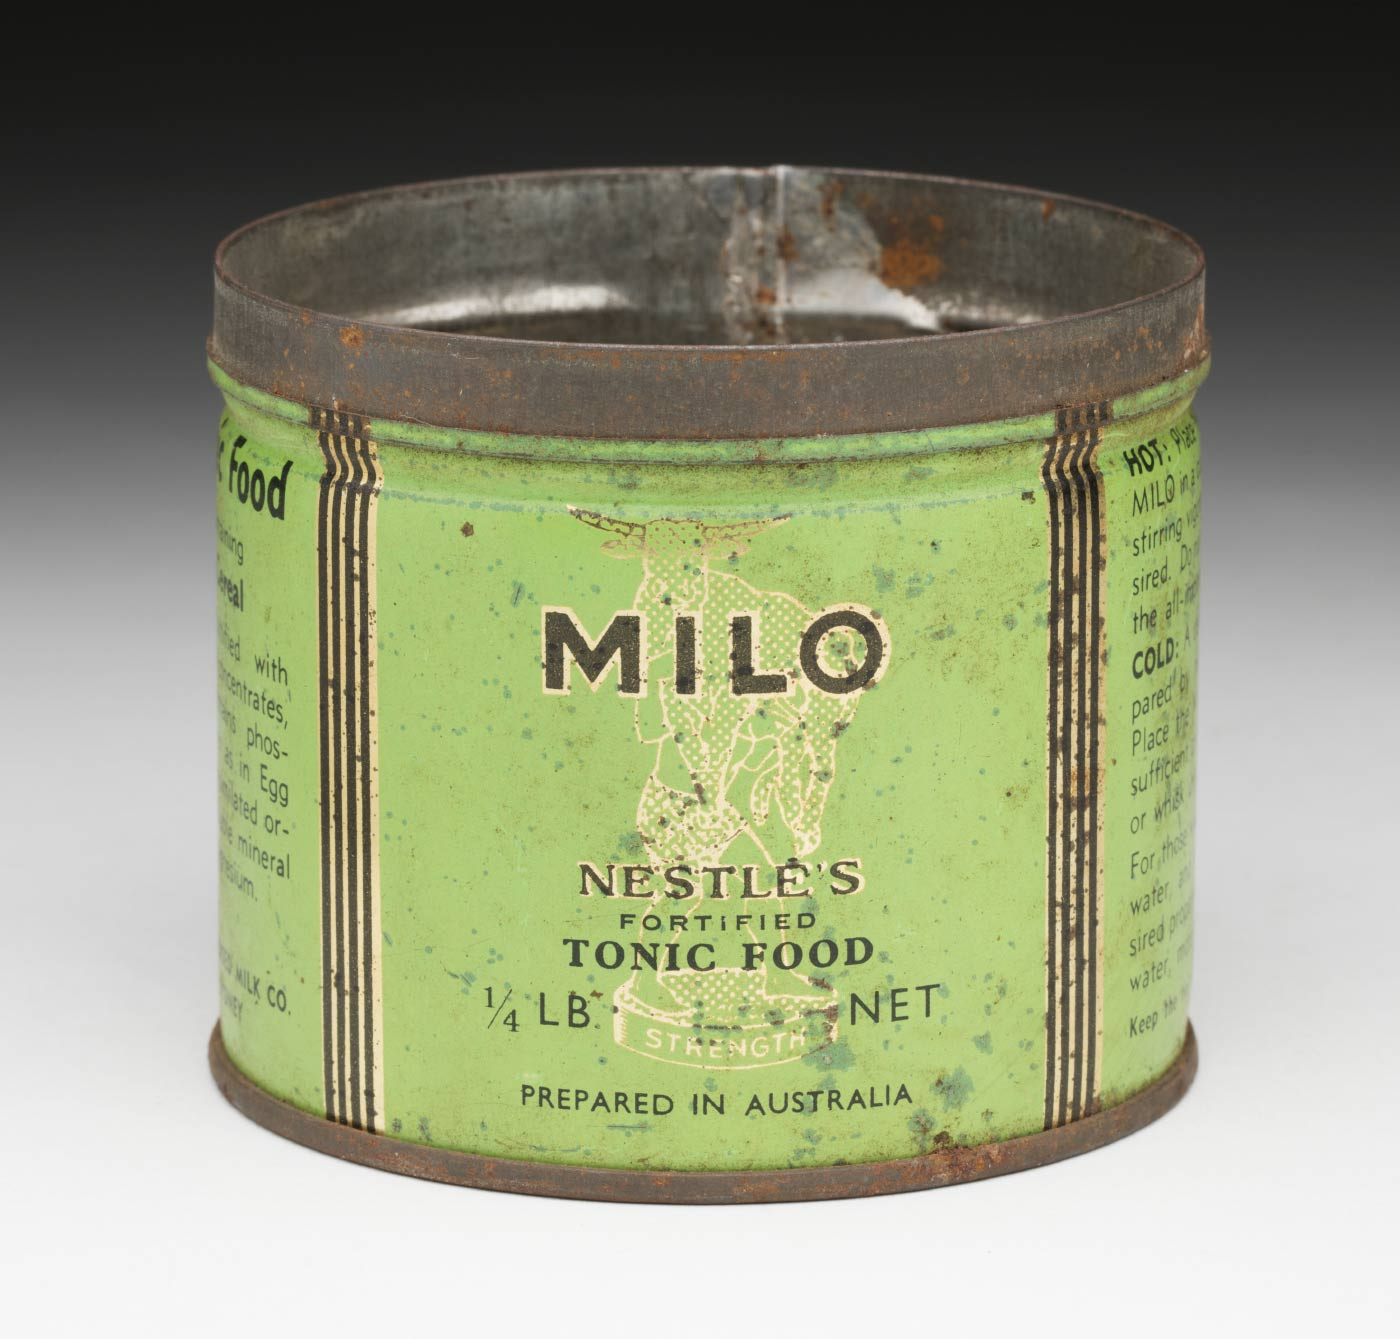 Round MILO tin without lid. The label is green, black and white and features an illustration of a bull being lifted by a man standing on a pedestal with the text 'STRENGTH' written on its side. on the label is the text 'MILO / NESTLE'S / FORTIFIED / TONIC FOOD / 1/4 LB NET / PREPARED IN AUSTRALIA'. - click to view larger image